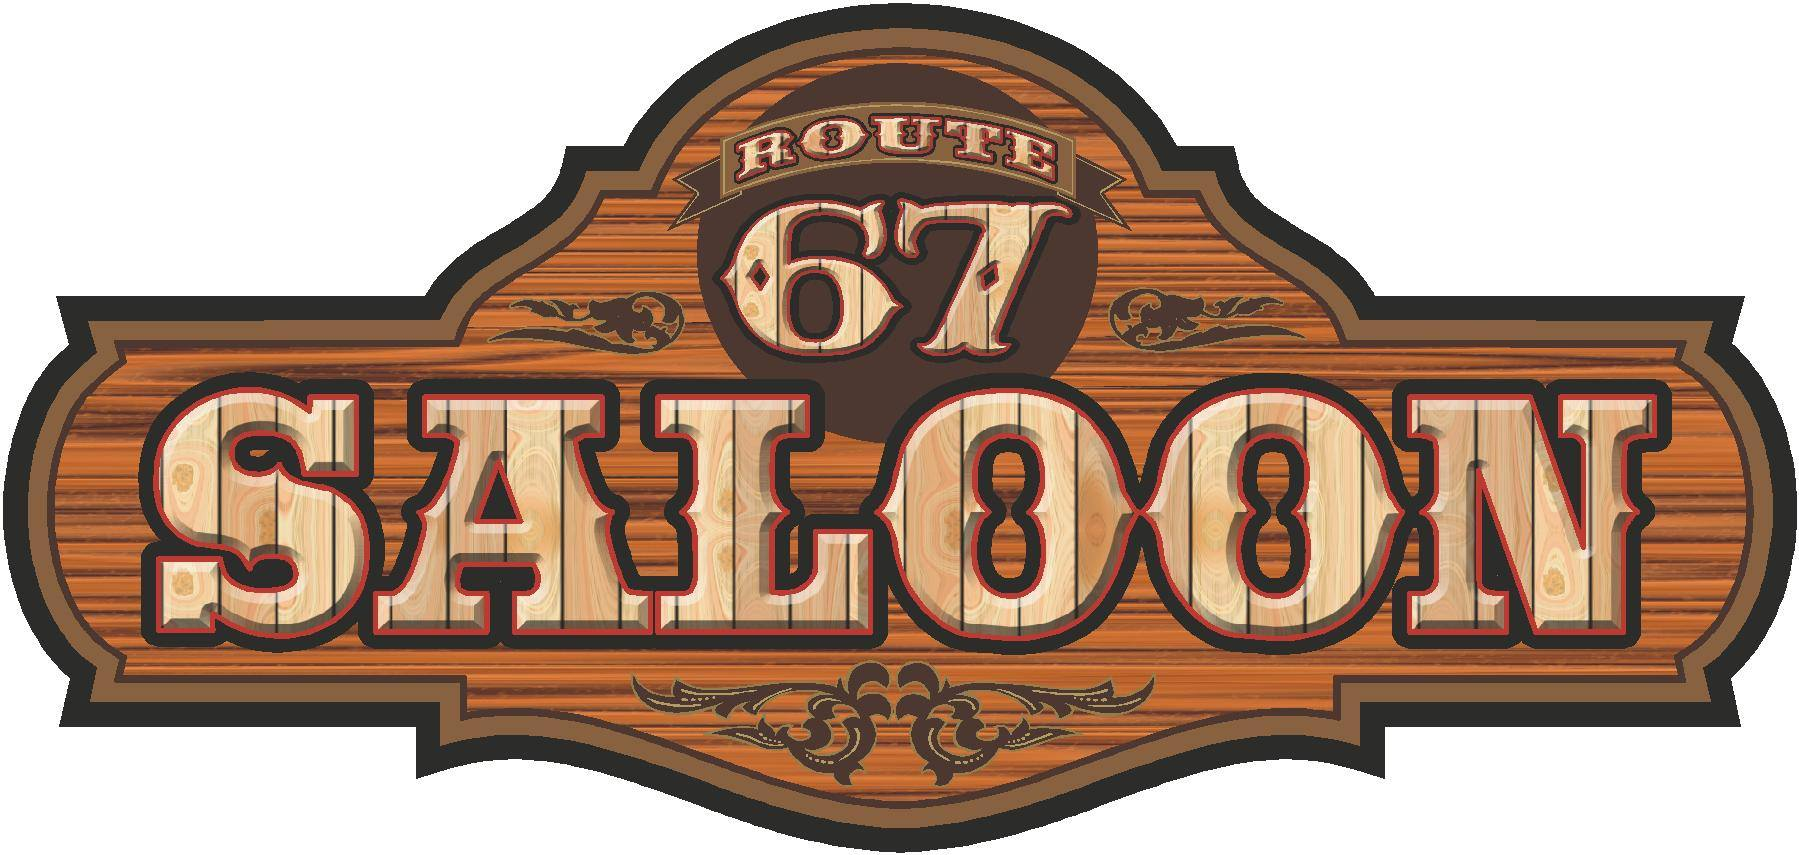 Route 67 Saloon